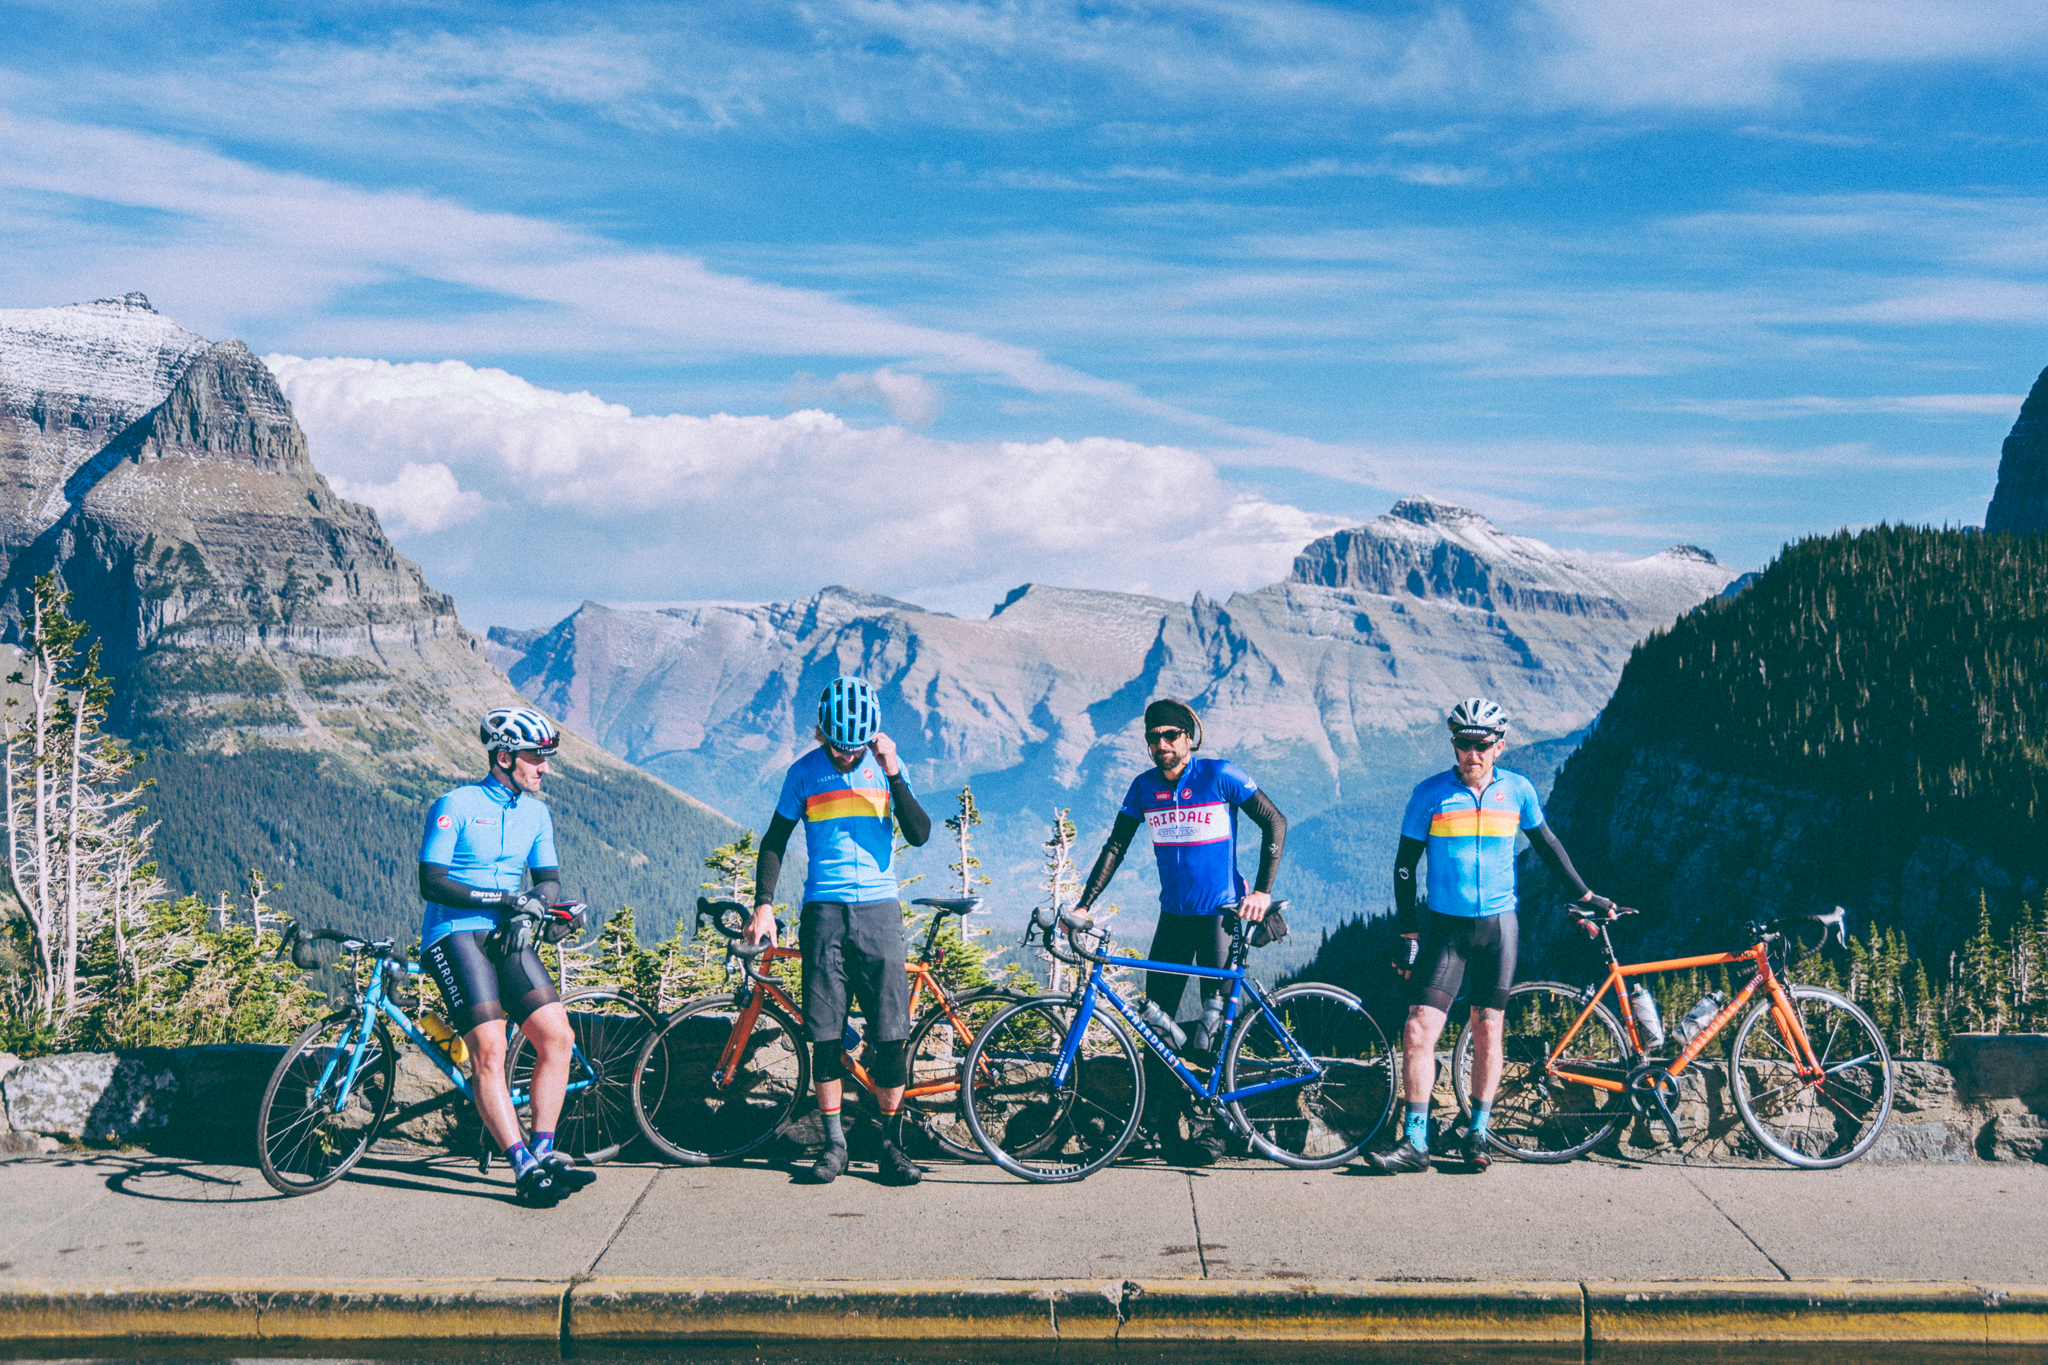 glacier-national-park-cycling-fairdale-3015